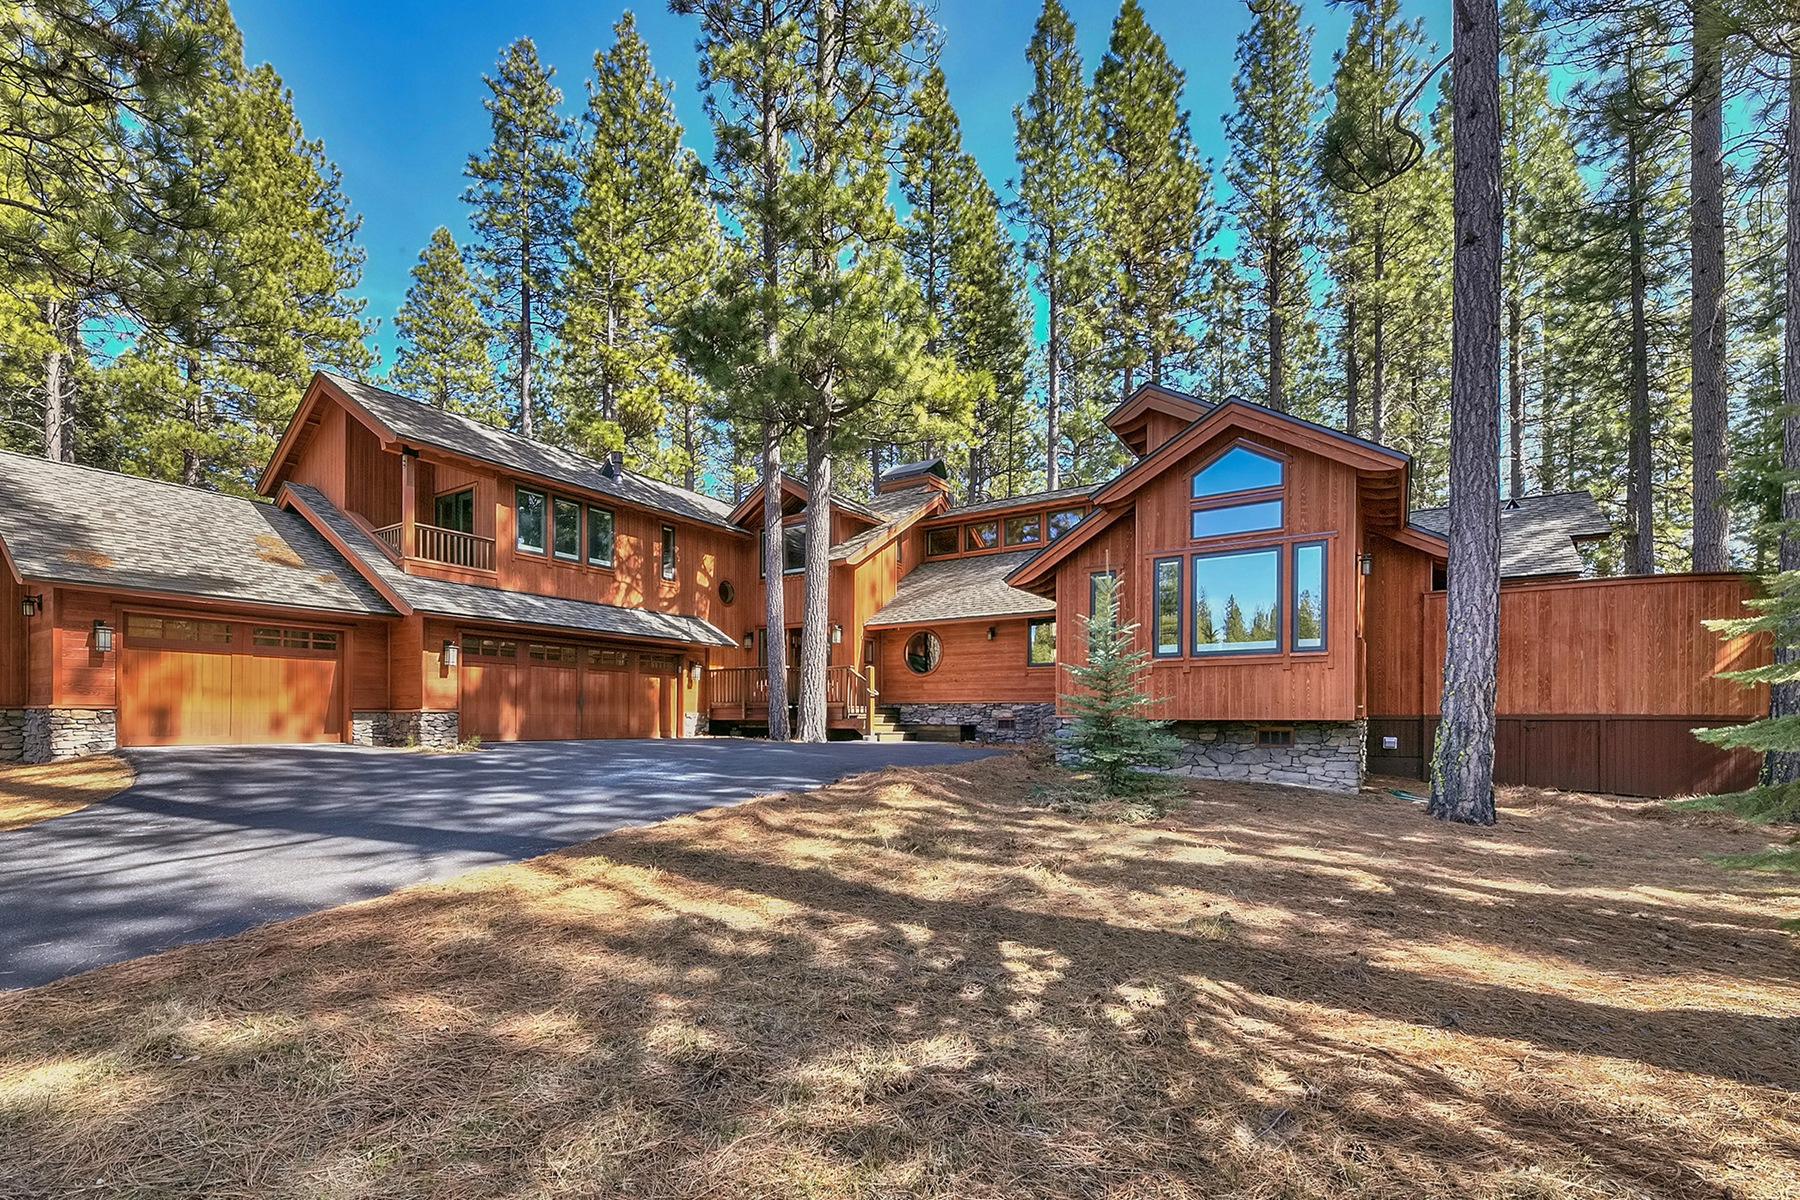 Single Family Home for Active at 806 Miners Passage, Clio CA 96106 806 Miners Passage Clio, California 96106 United States